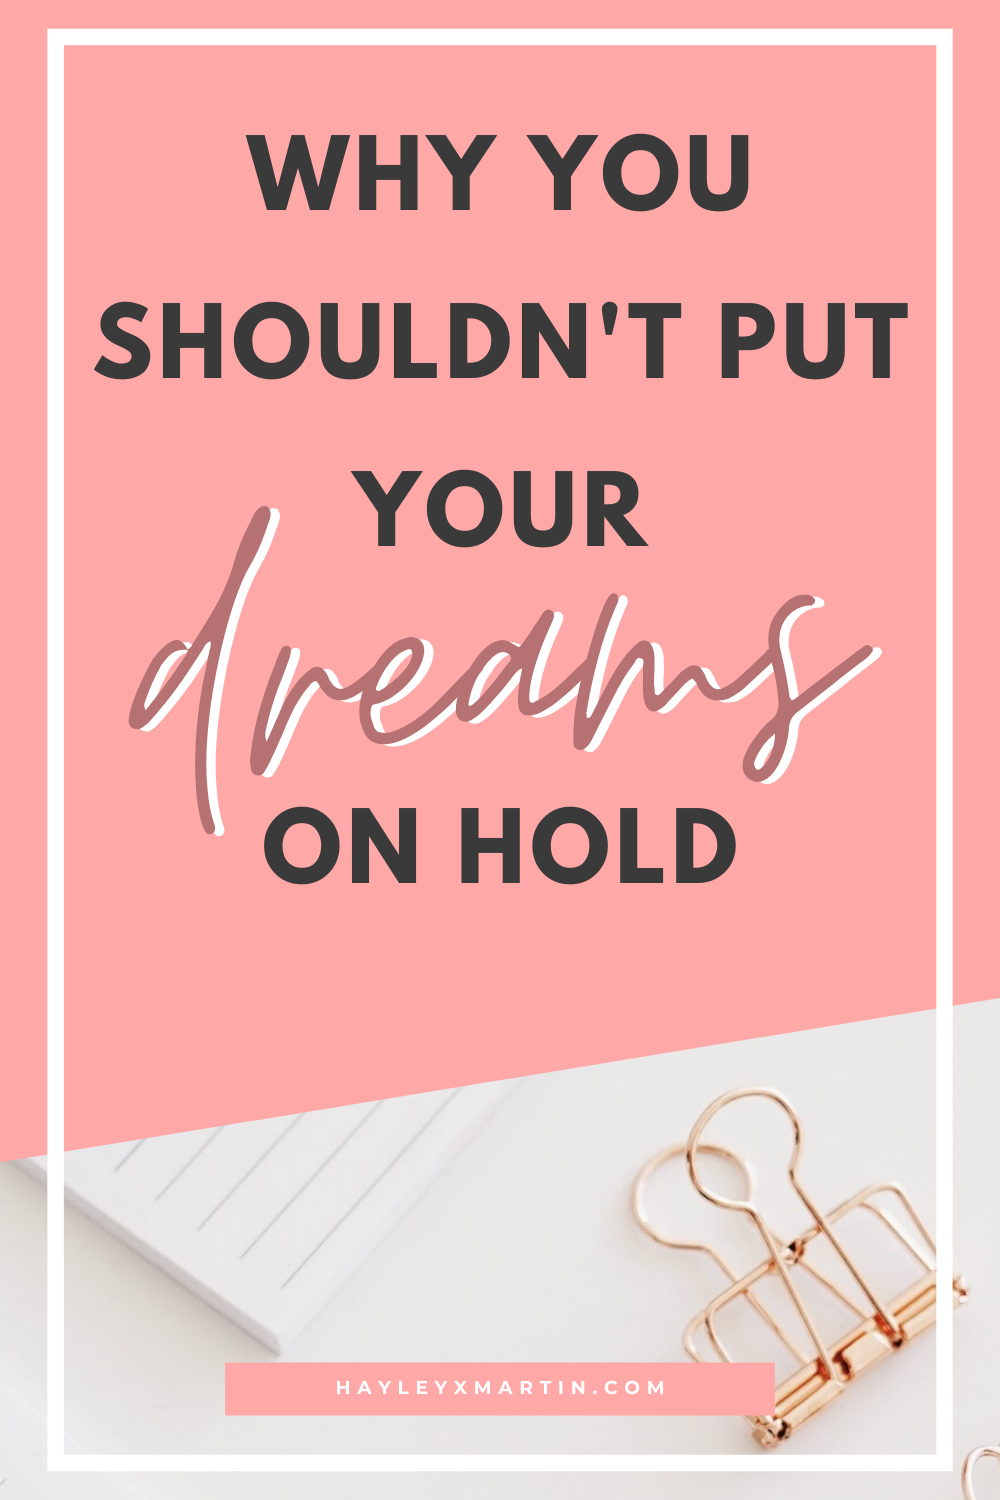 WHY YOU SHOULDN'T PUT YOUR DREAMS ON HOLD | HAYLEYXMARTIN